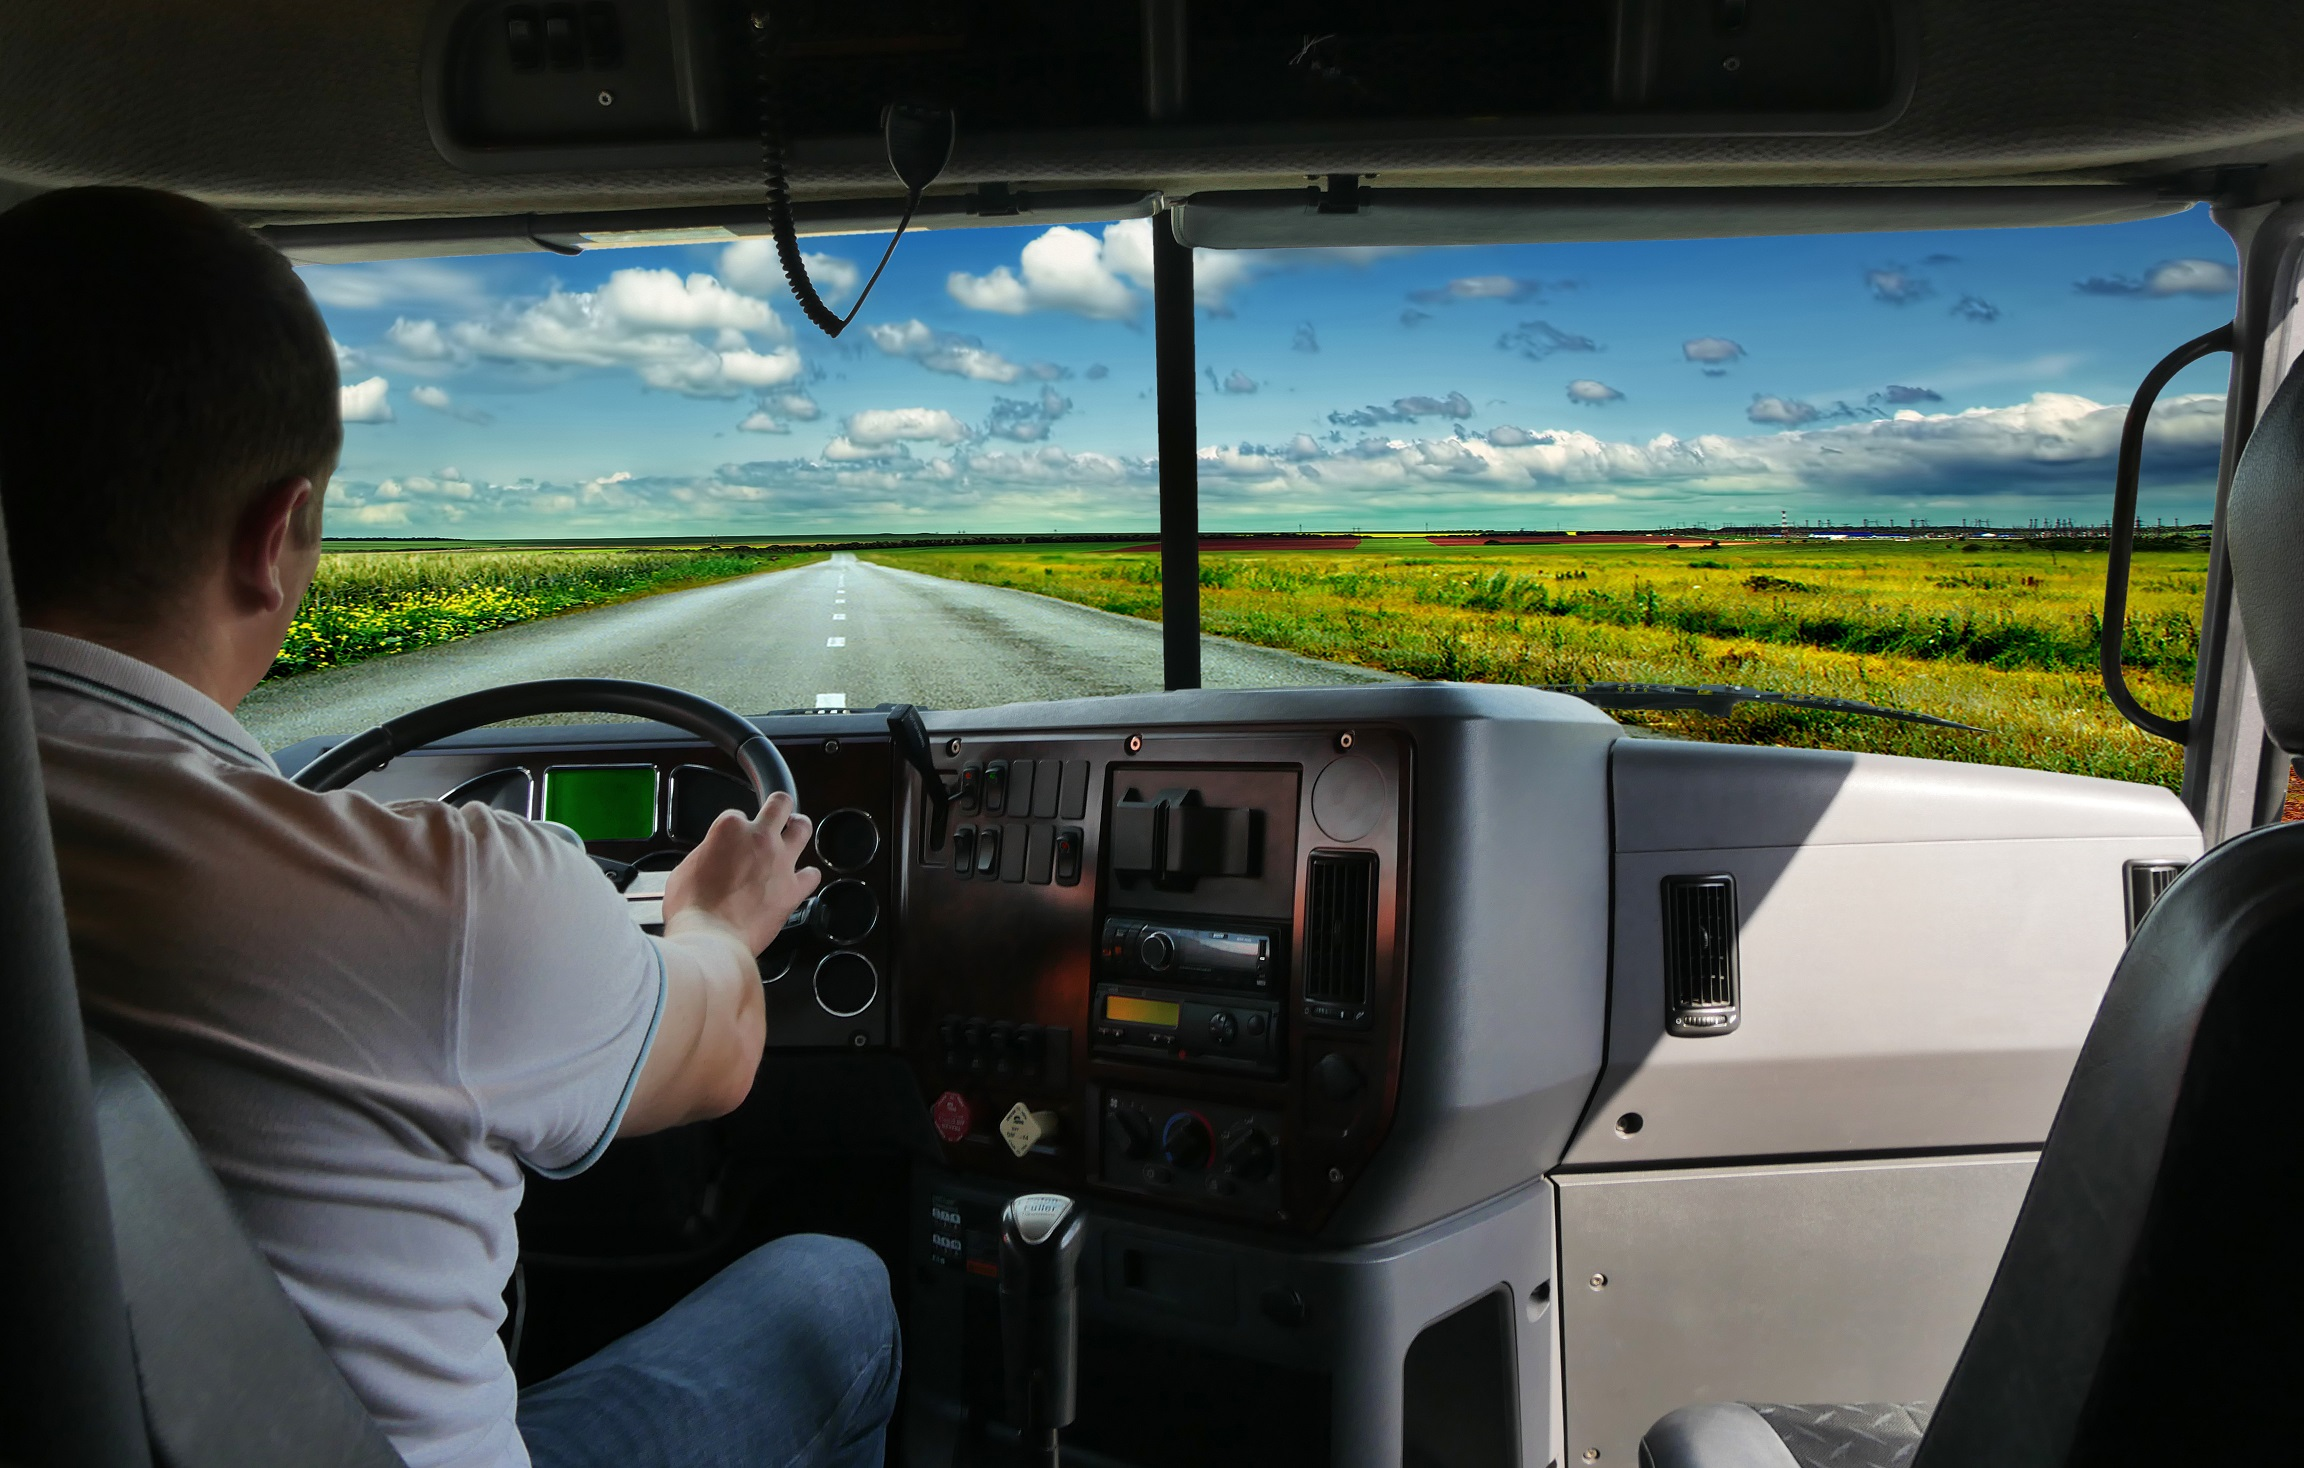 Guy driving a truck interior